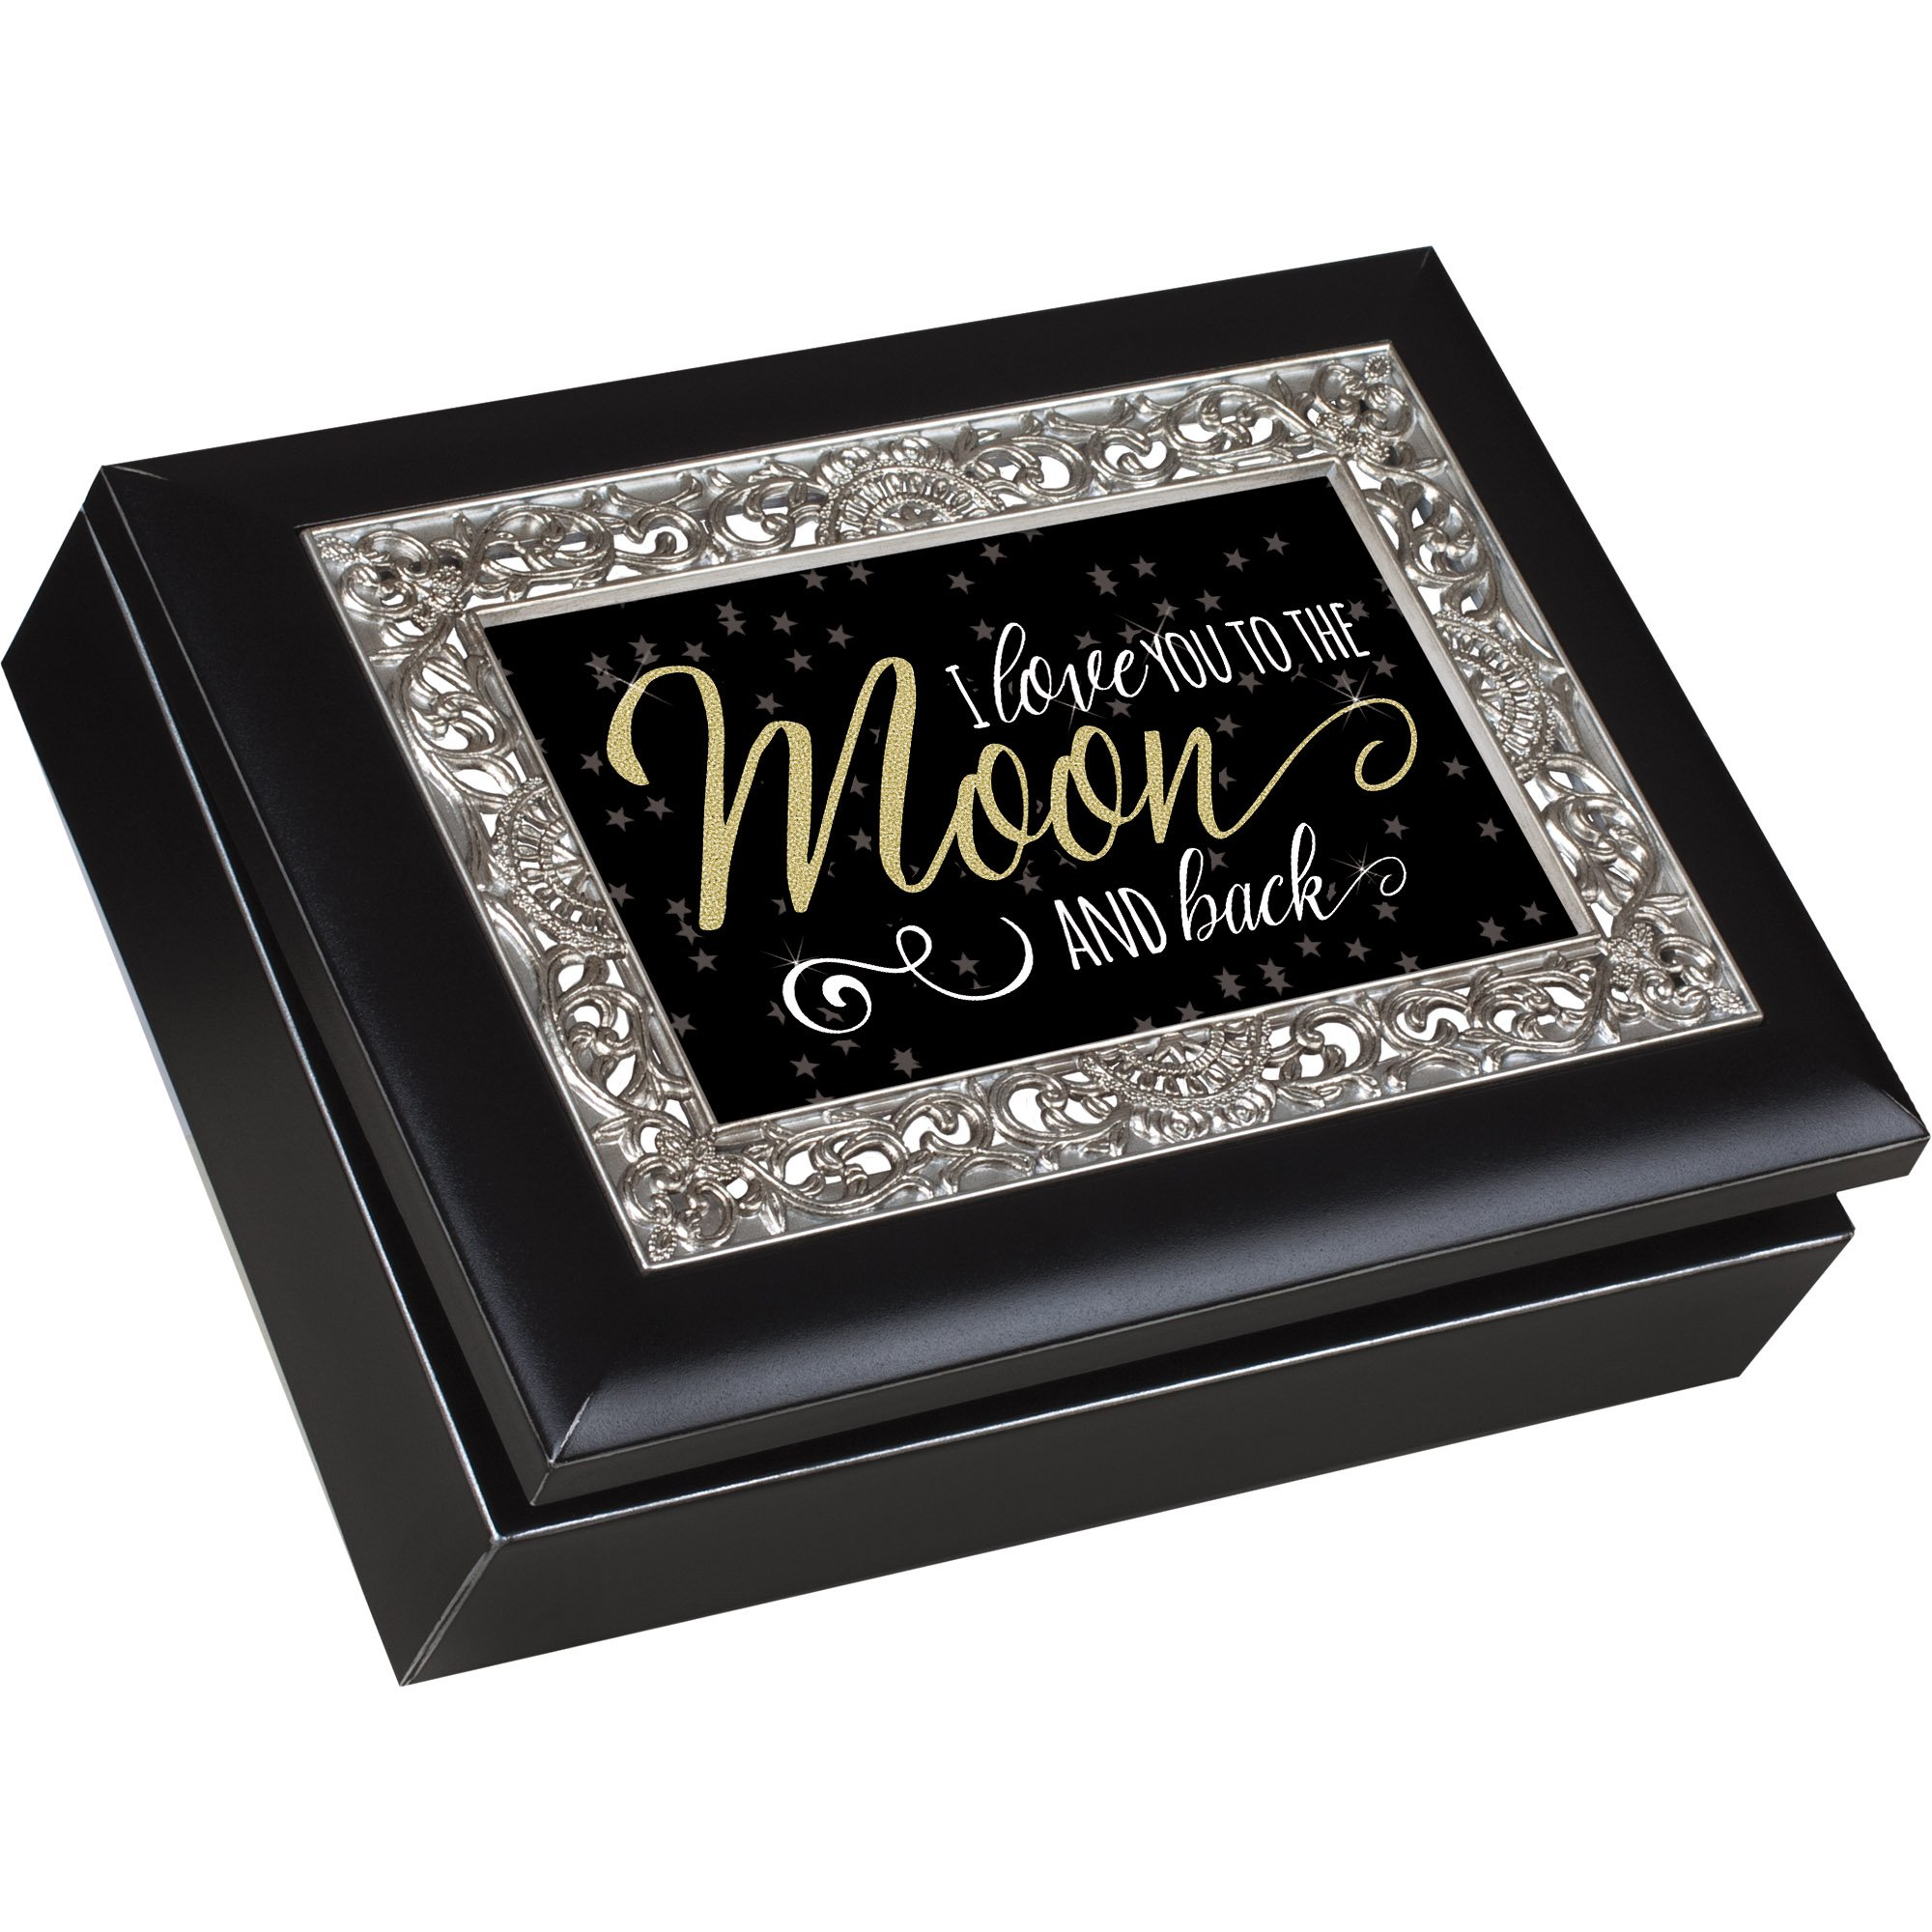 Cottage Garden Love You To The Moon Black Ornate Silver Tone Inlay Jewelry Keepsake Box